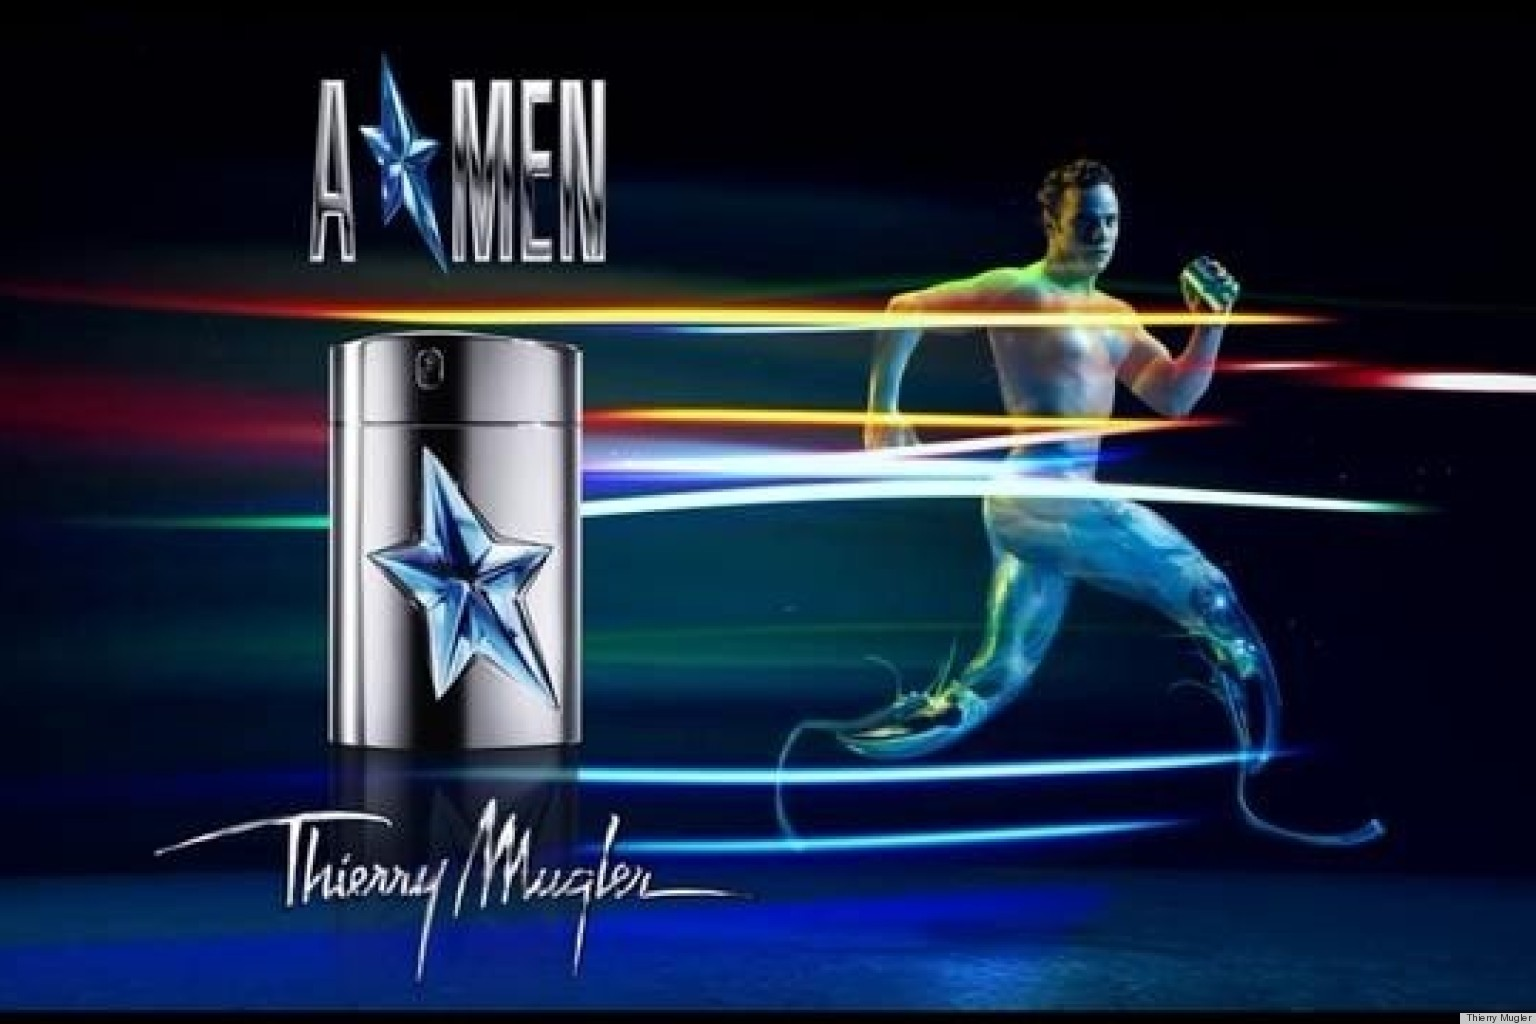 PHOTOS: Thierry Mugler Pulls Its Oscar Pistorius Ads